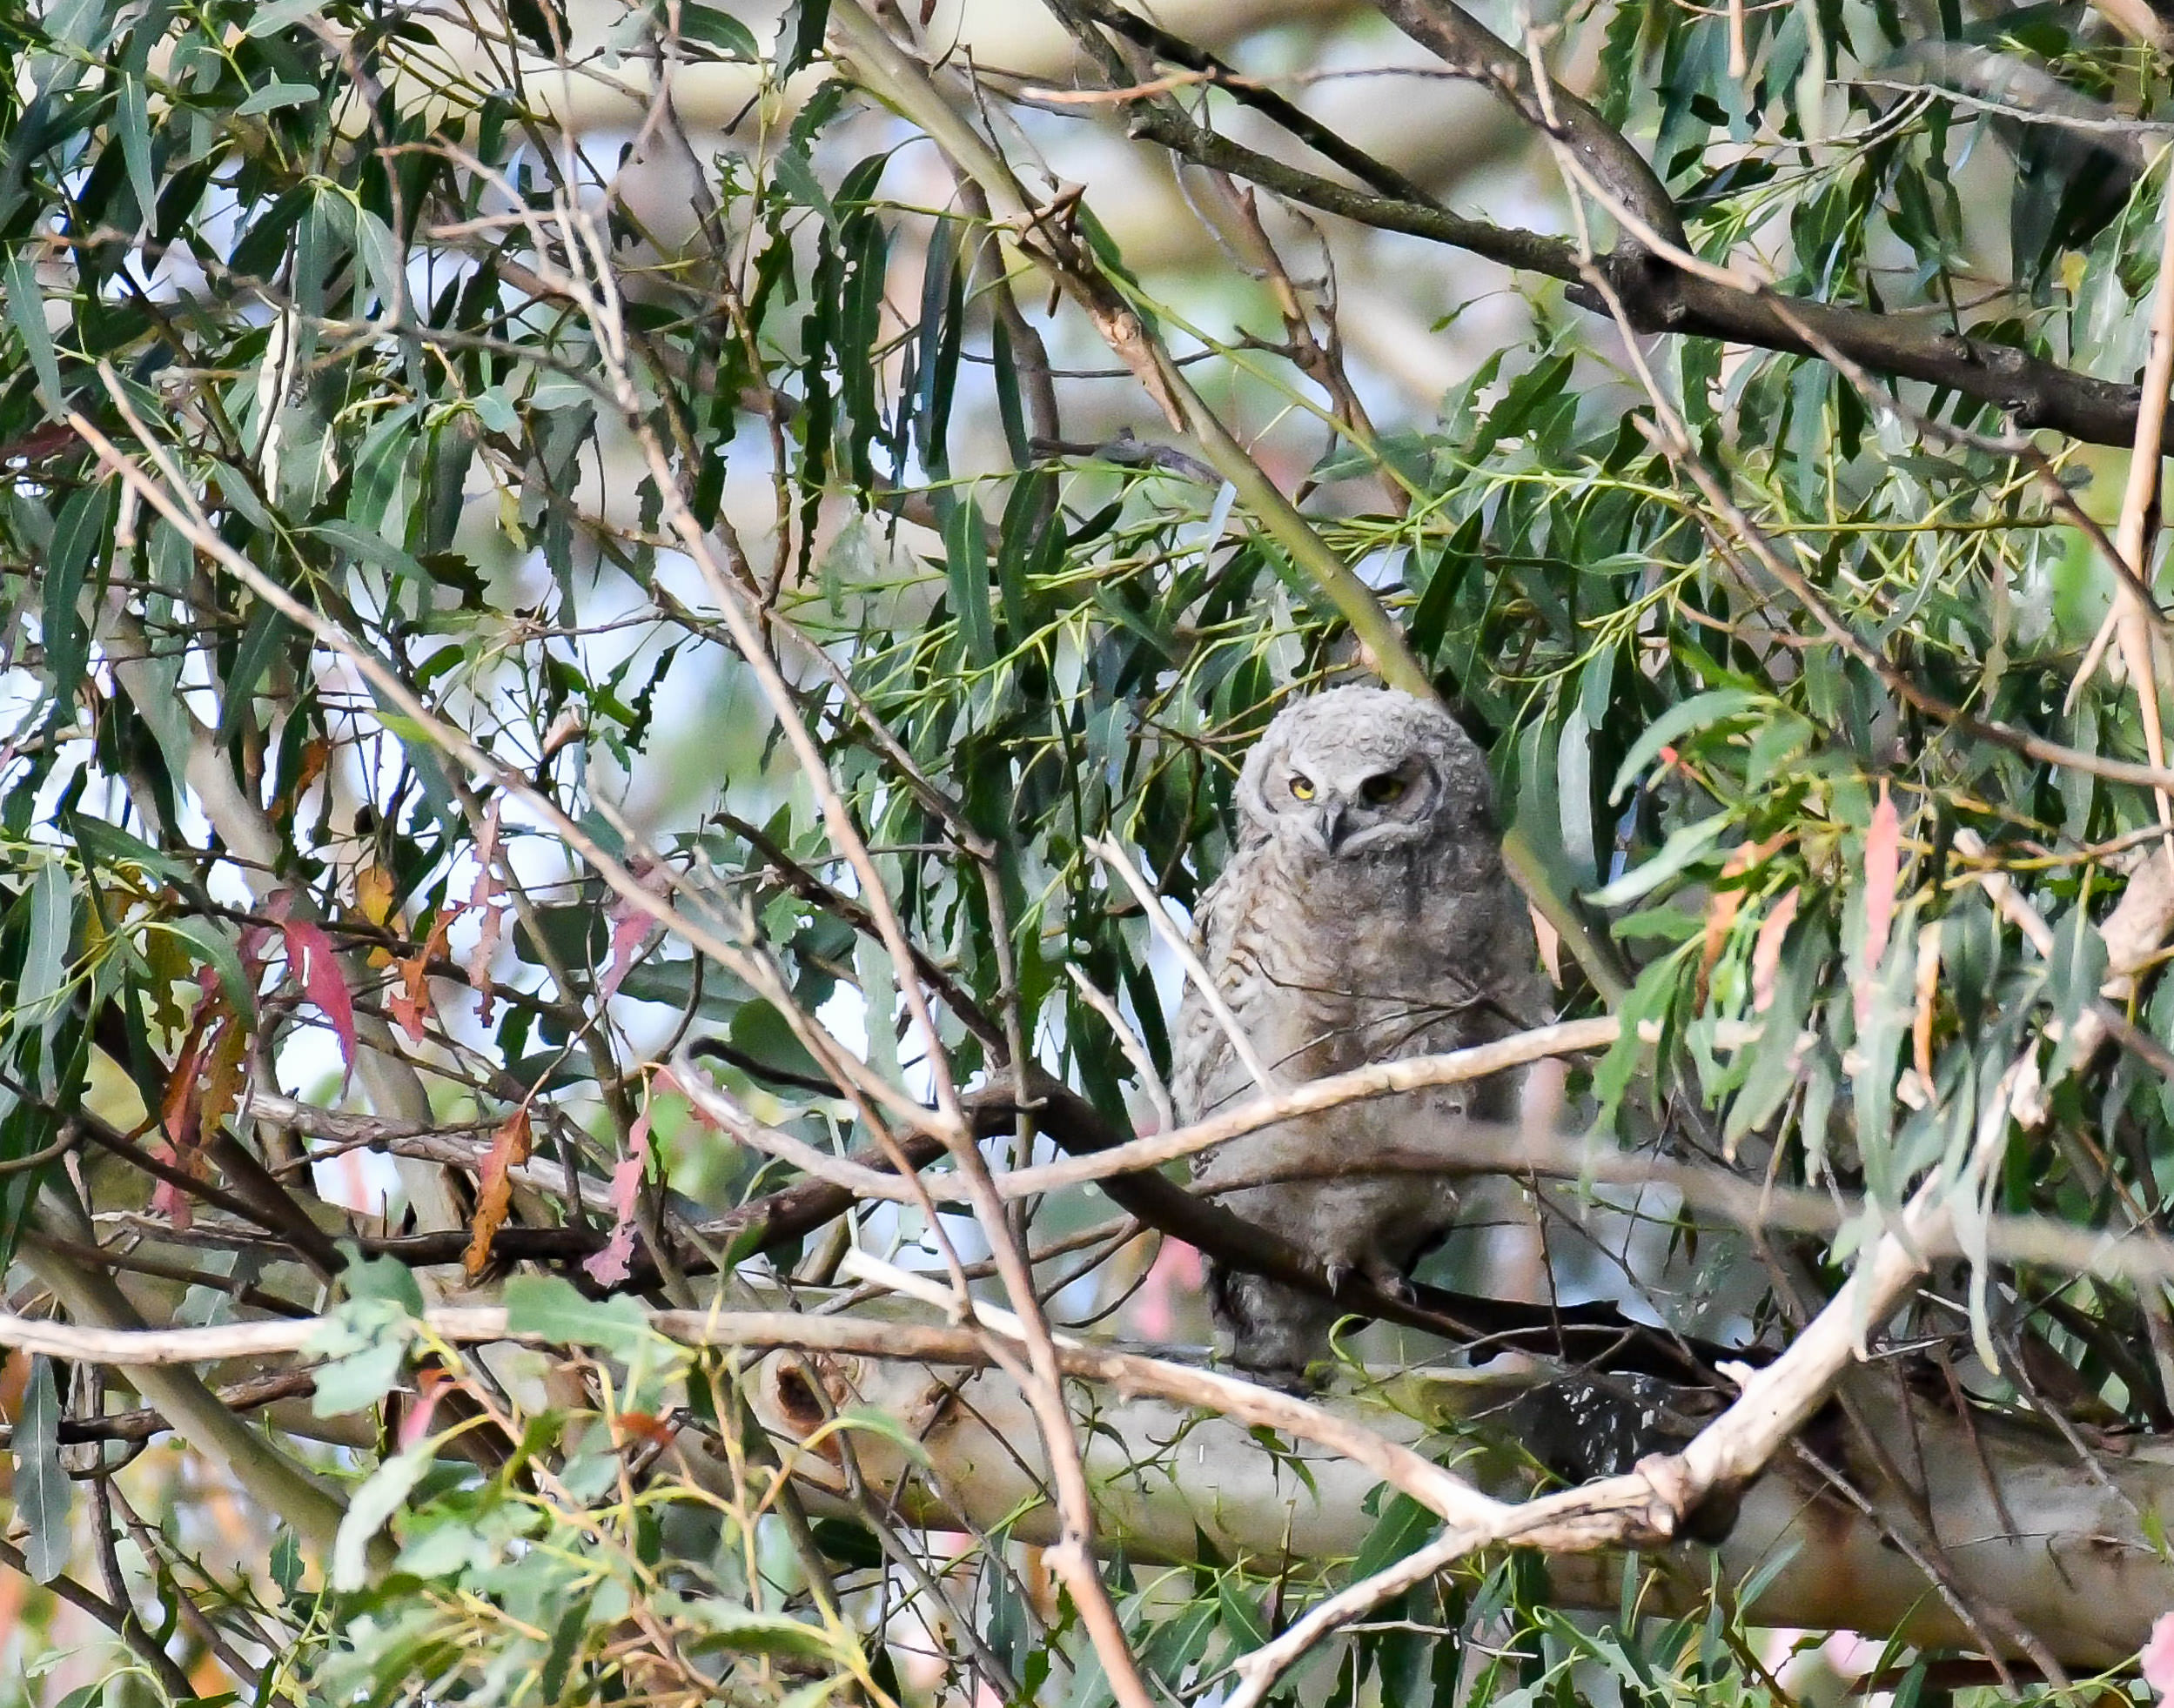 A fledgling great horned owl in a tree